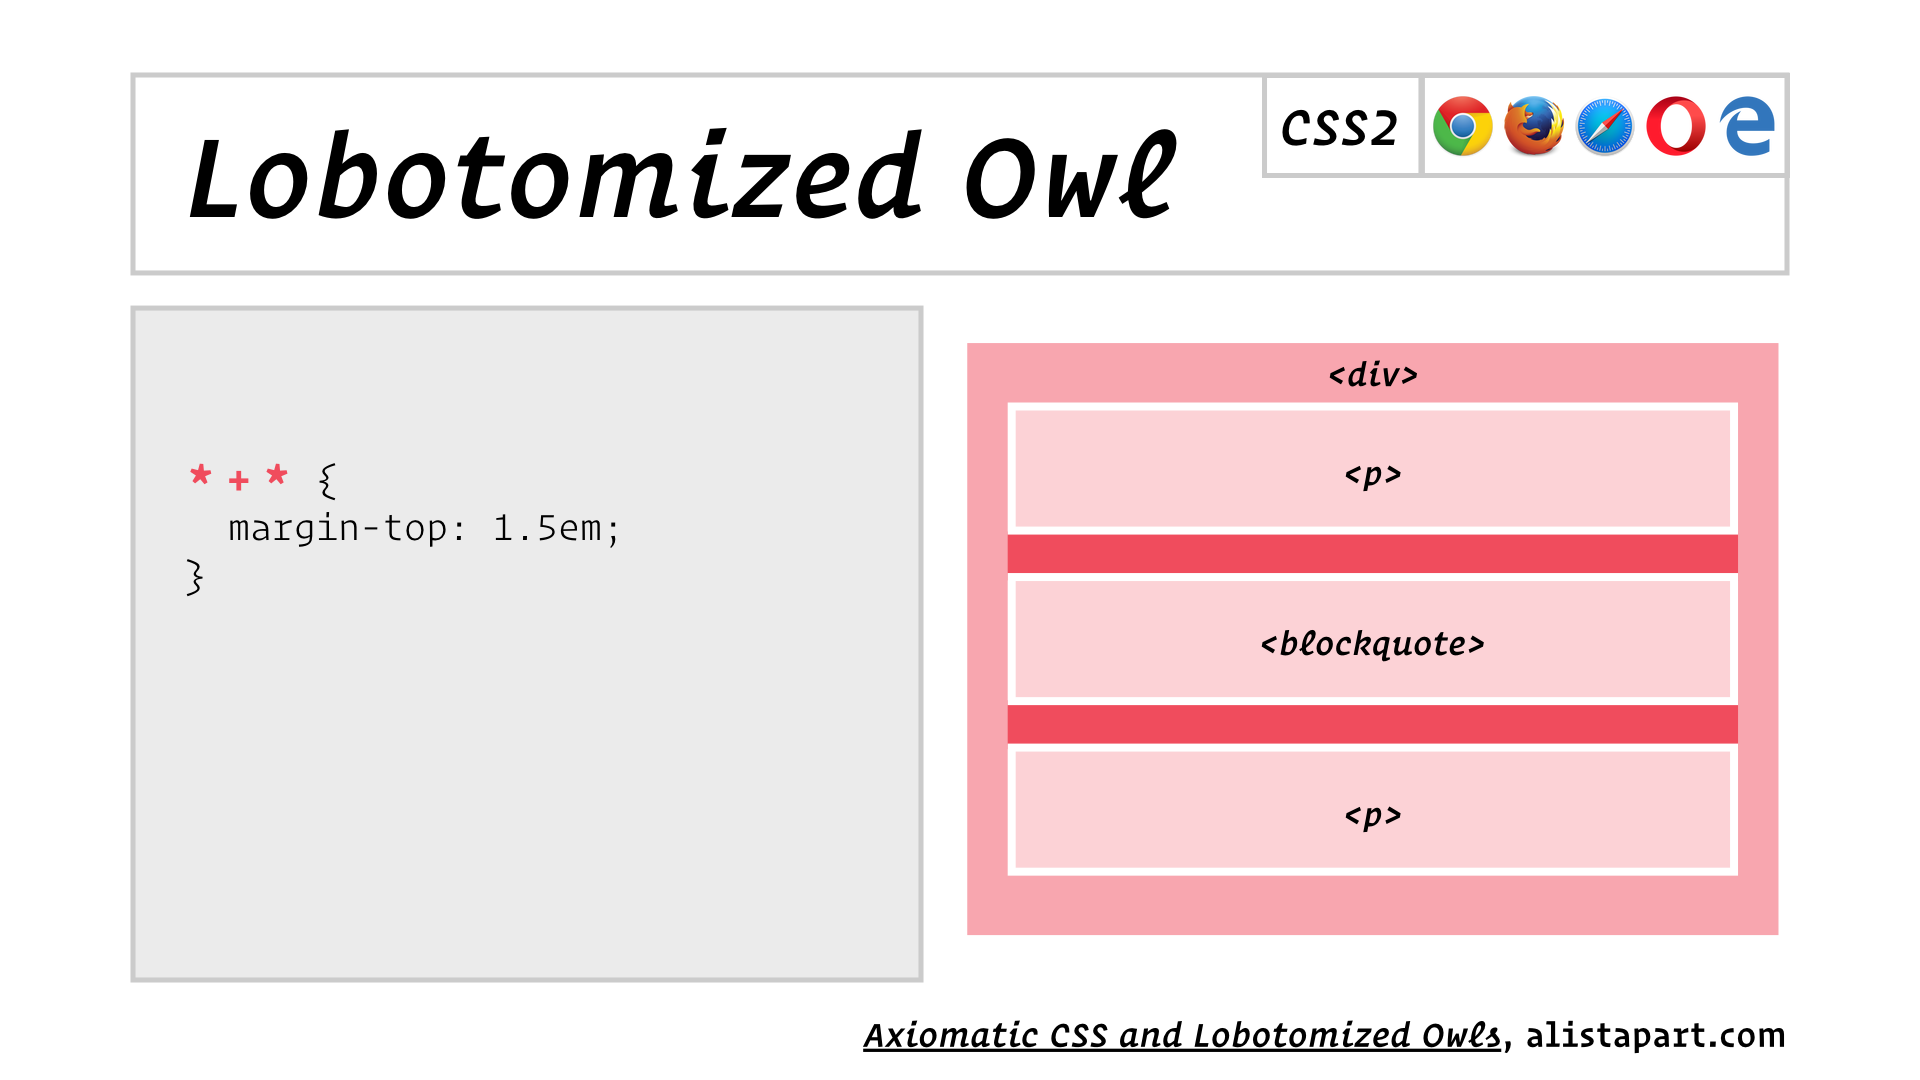 slide: Lobotomized Owl * + * { margin-top: 1.5em; }